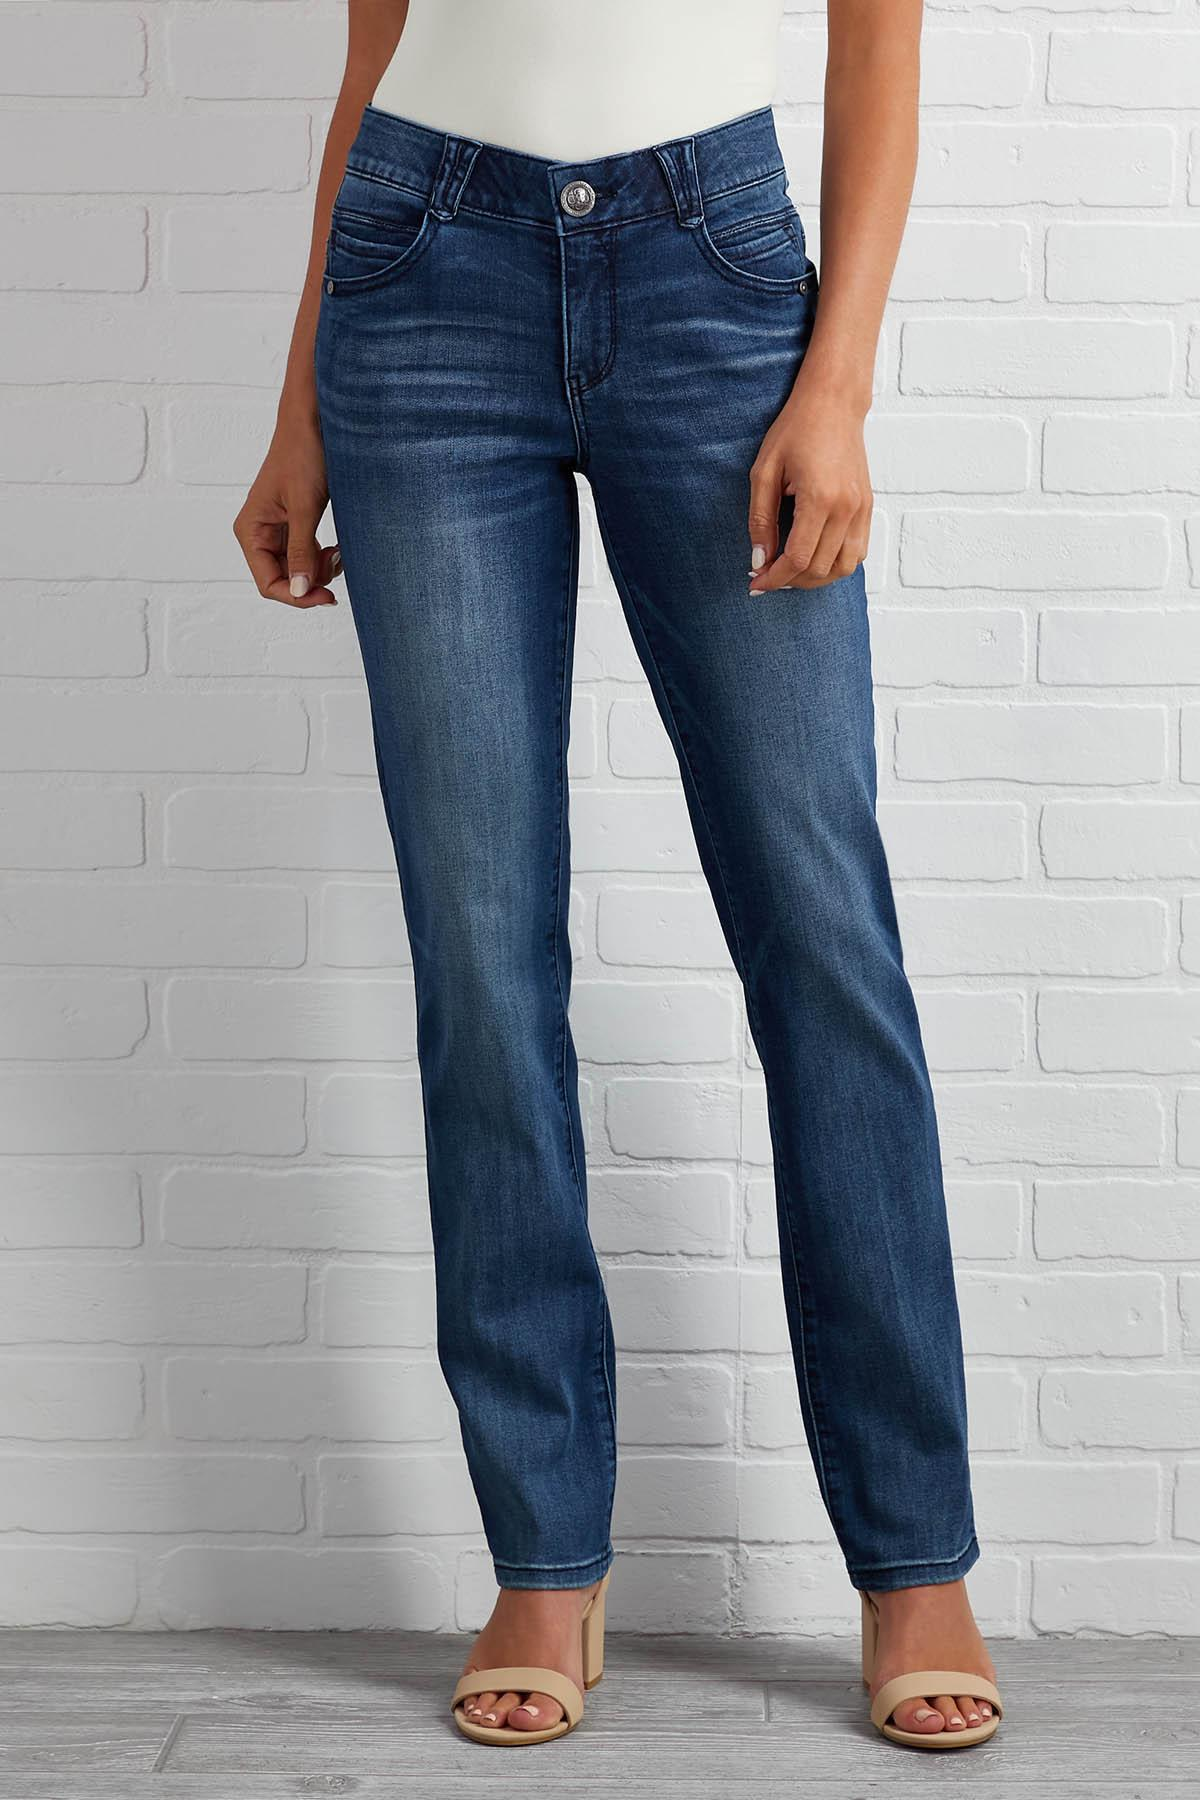 Straight To The Point Jeans